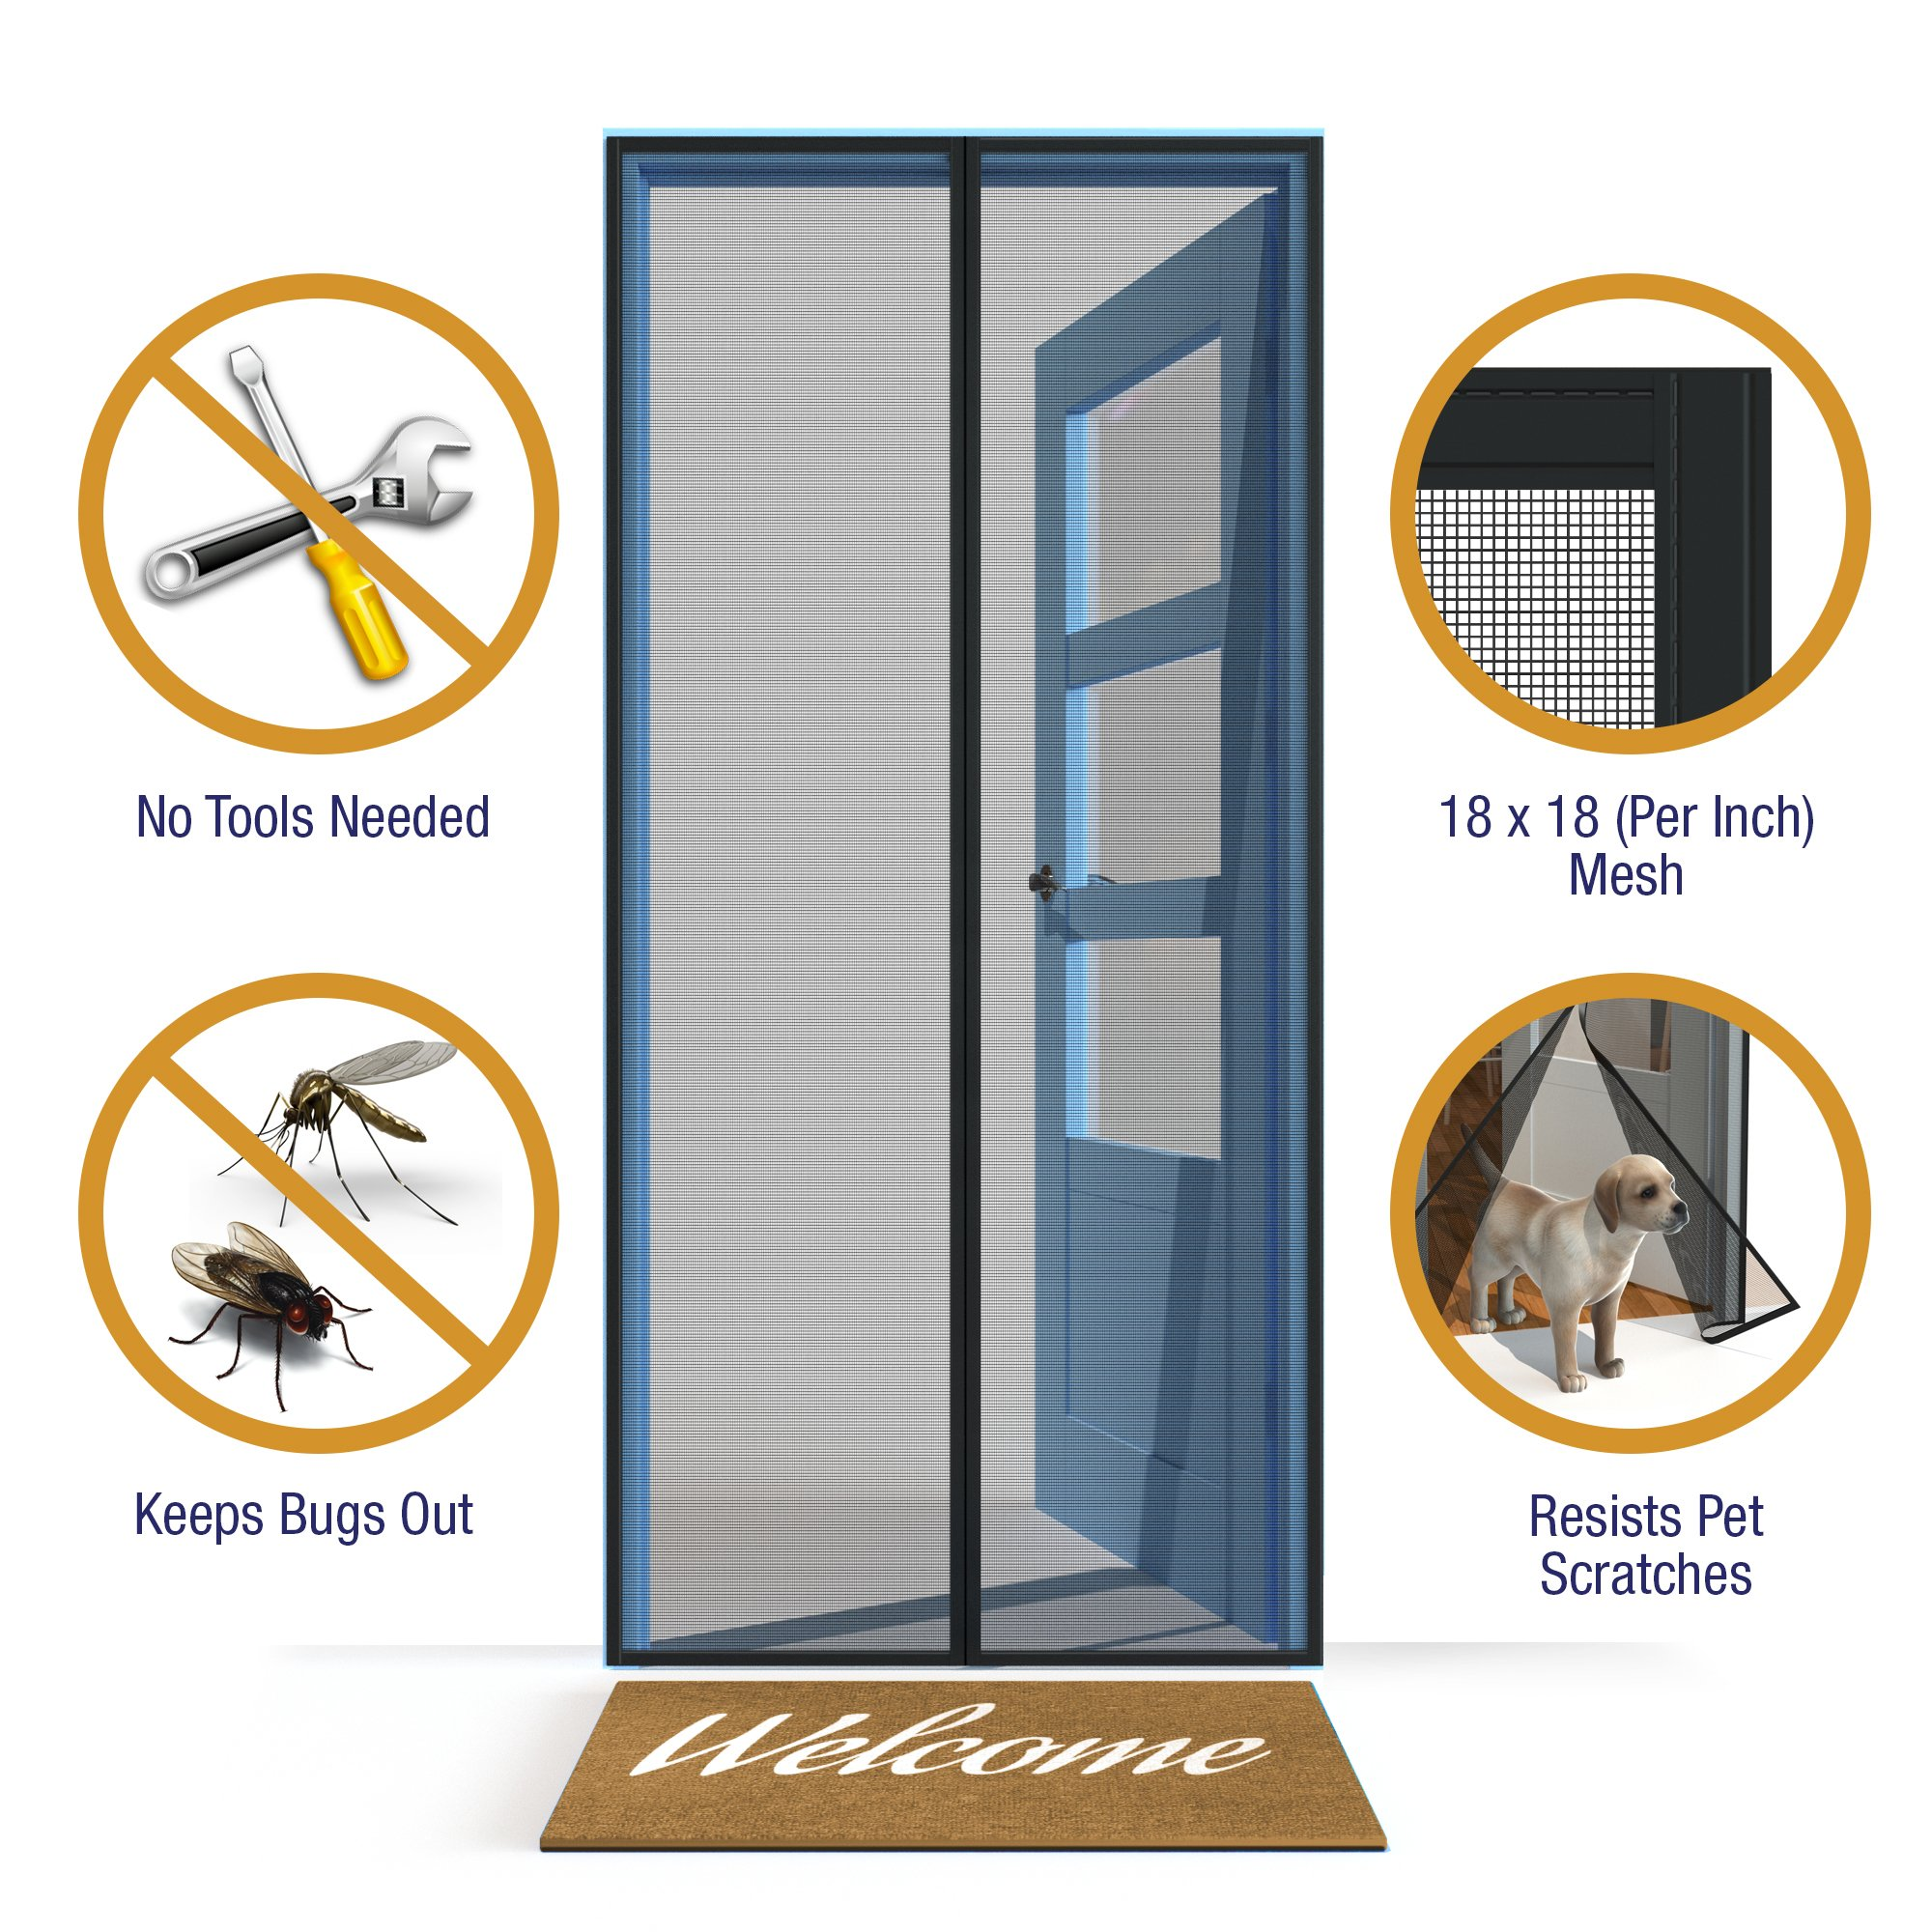 Home Diamonds Ultra Heavy Duty Fiberglass Magnetic Mesh Screen Door Full Frame Velcro, 28 Strong Magnets, Fit Doors up to 34 x 81-inches by Home Diamonds (Image #3)